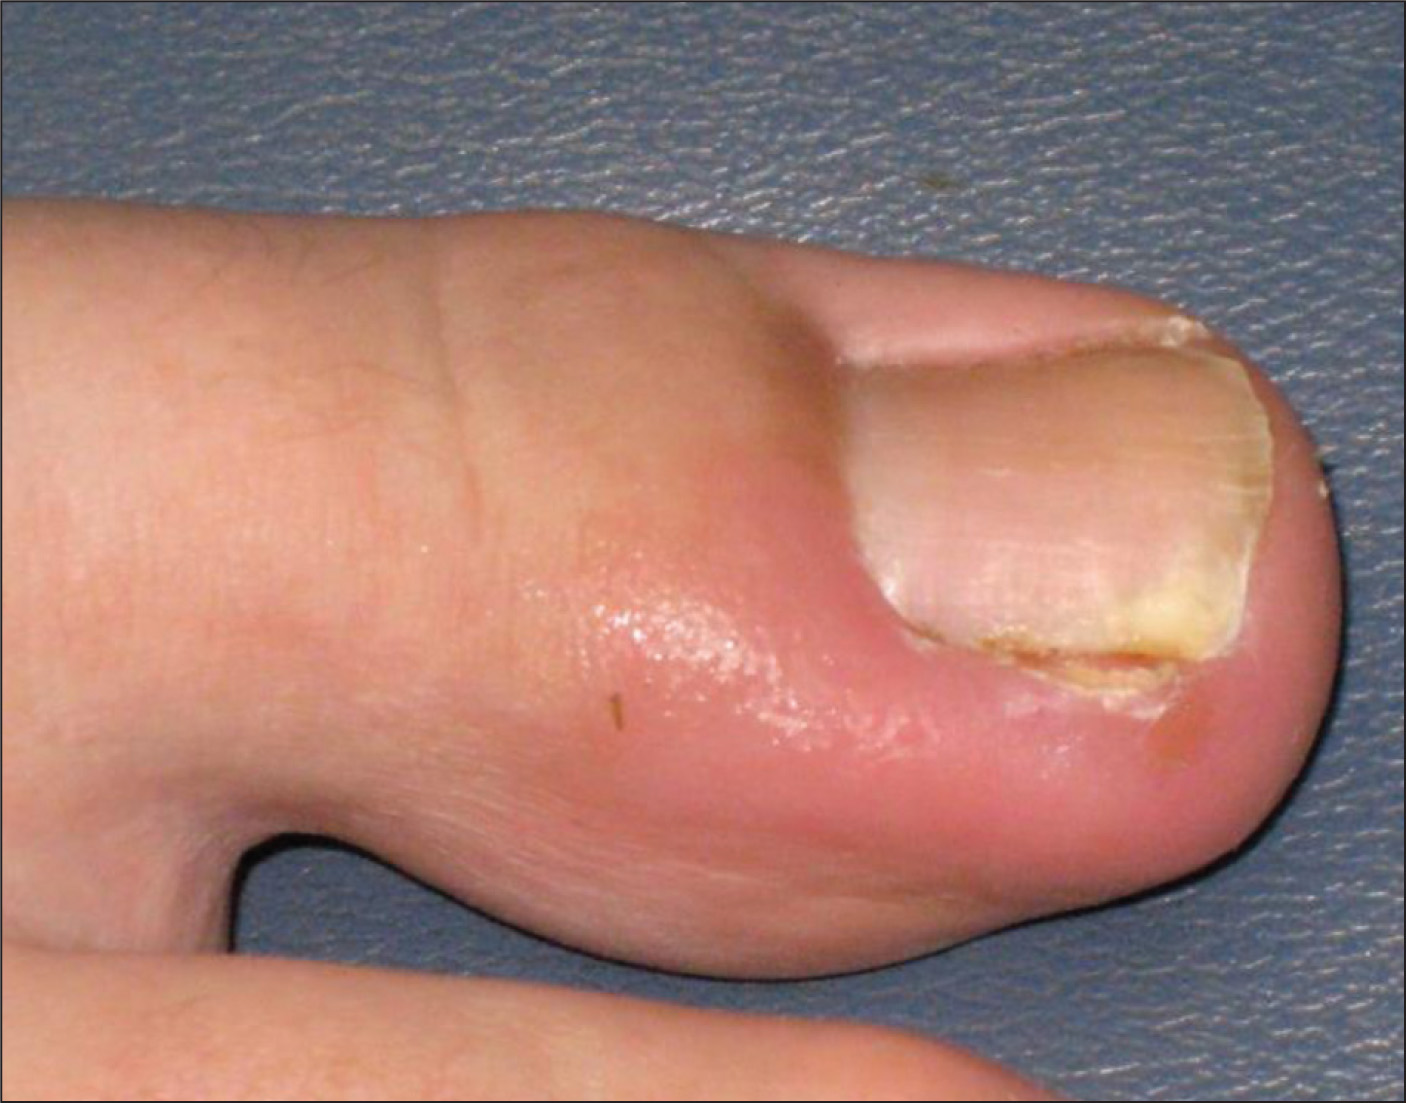 Nailing The Management Of The Ingrown Great Toenail